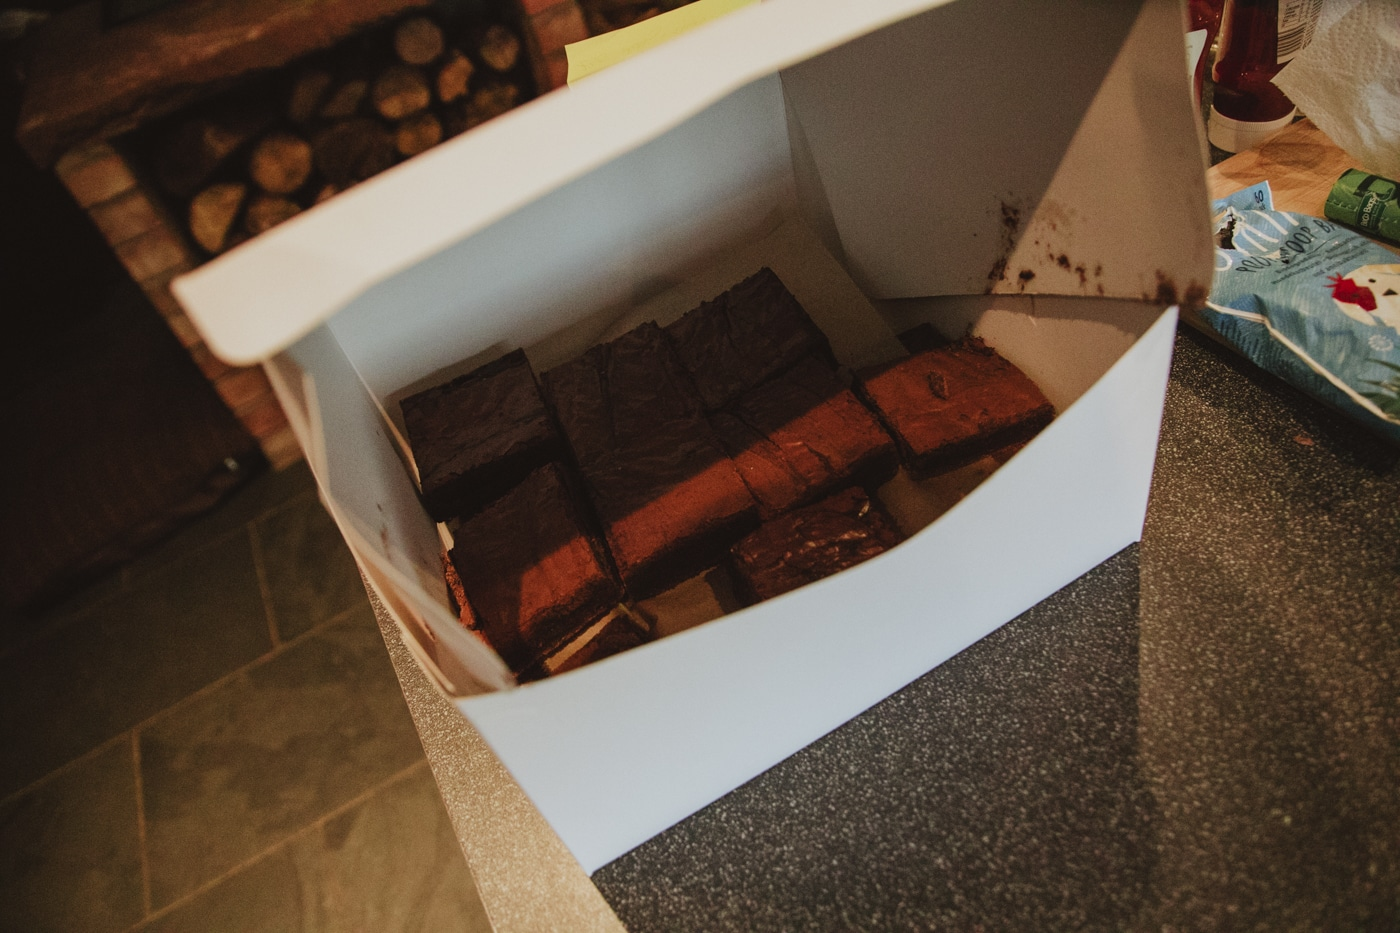 Box of chocolate brownies by Joshua Wyborn